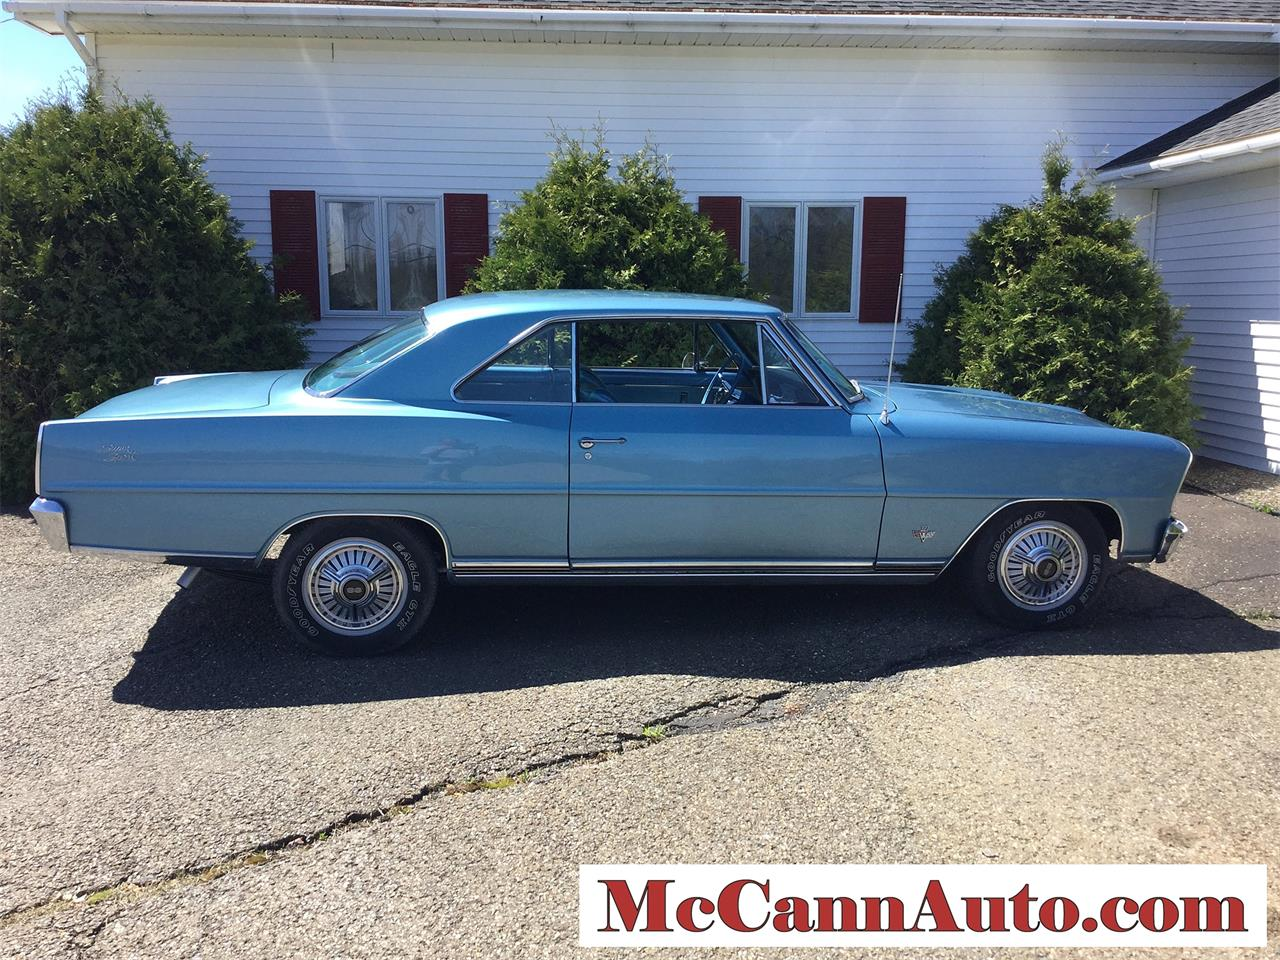 Large Picture of Classic 1966 Chevrolet Nova II SS located in Houlton Maine - $76,900.00 - JQ4K